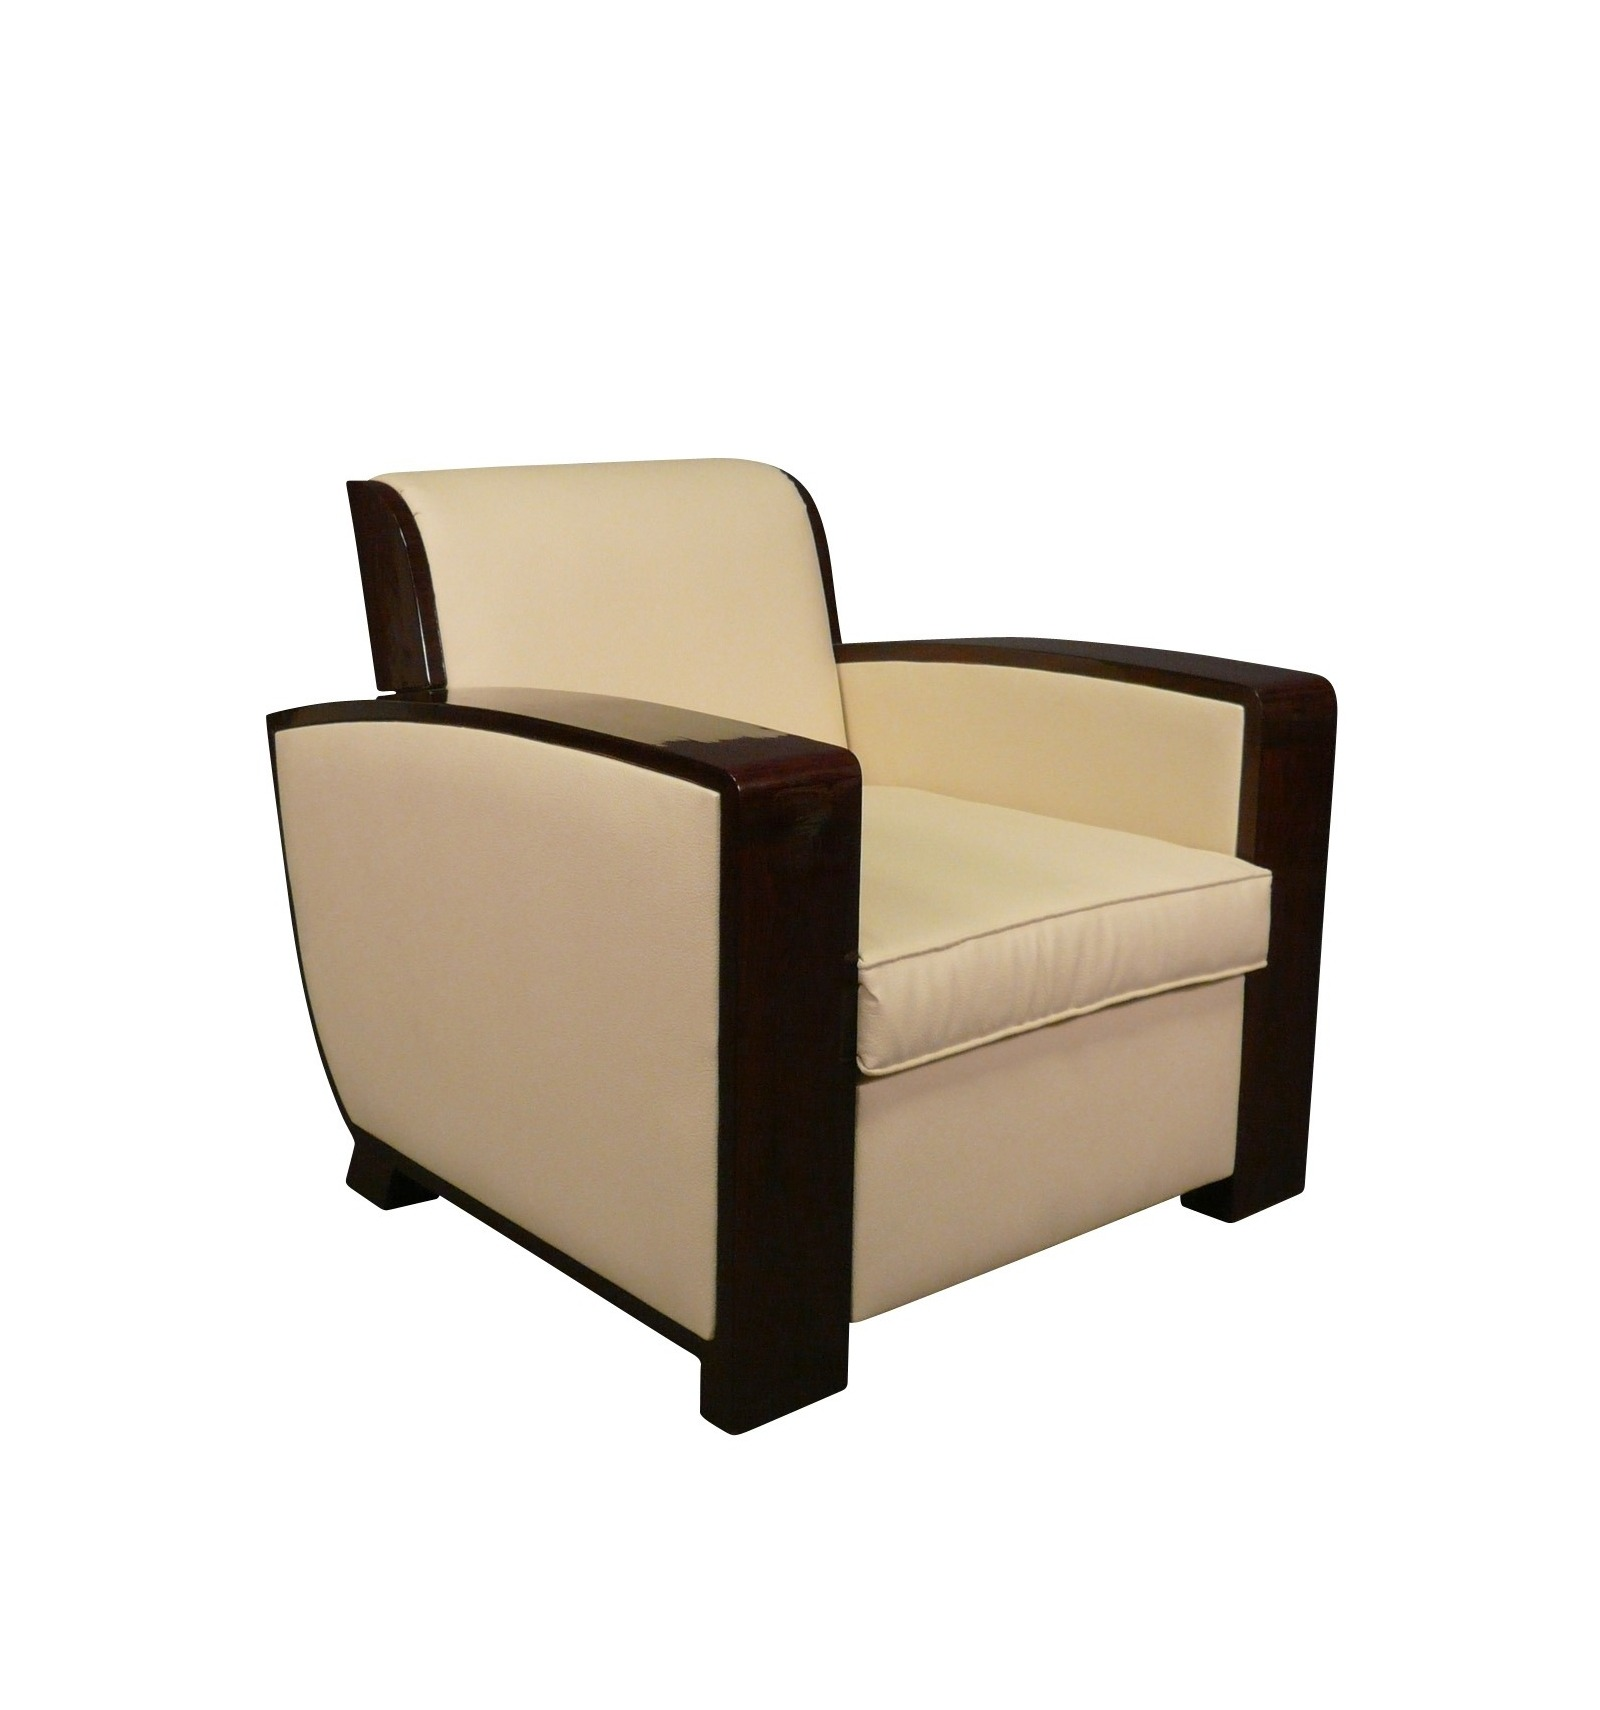 Fauteuil art d co paris mobilier art d co - Canape art deco paris ...